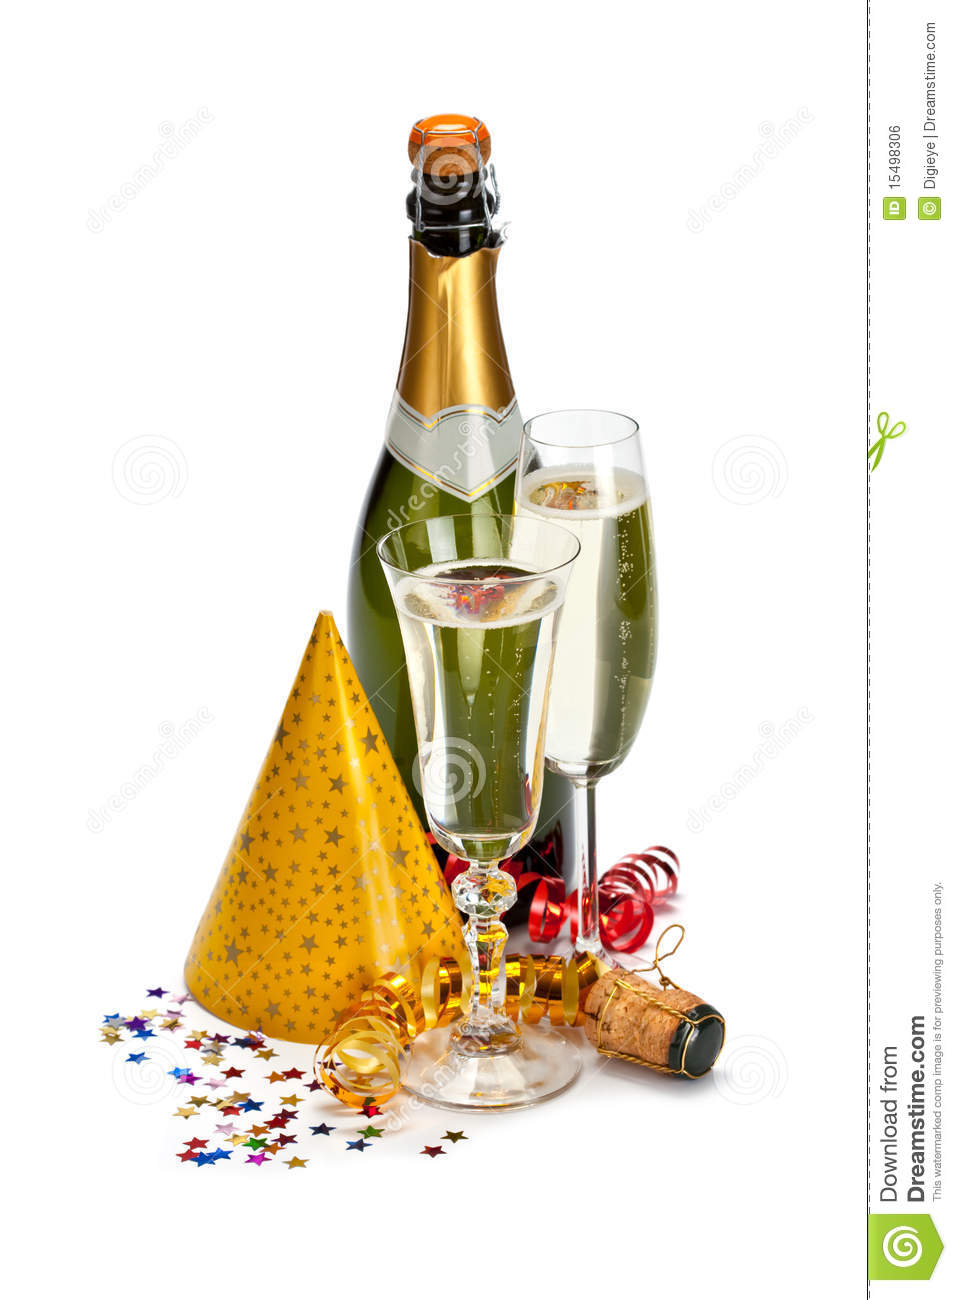 Champagne And Party Caps Royalty Free Stock Image - Image: 15498306